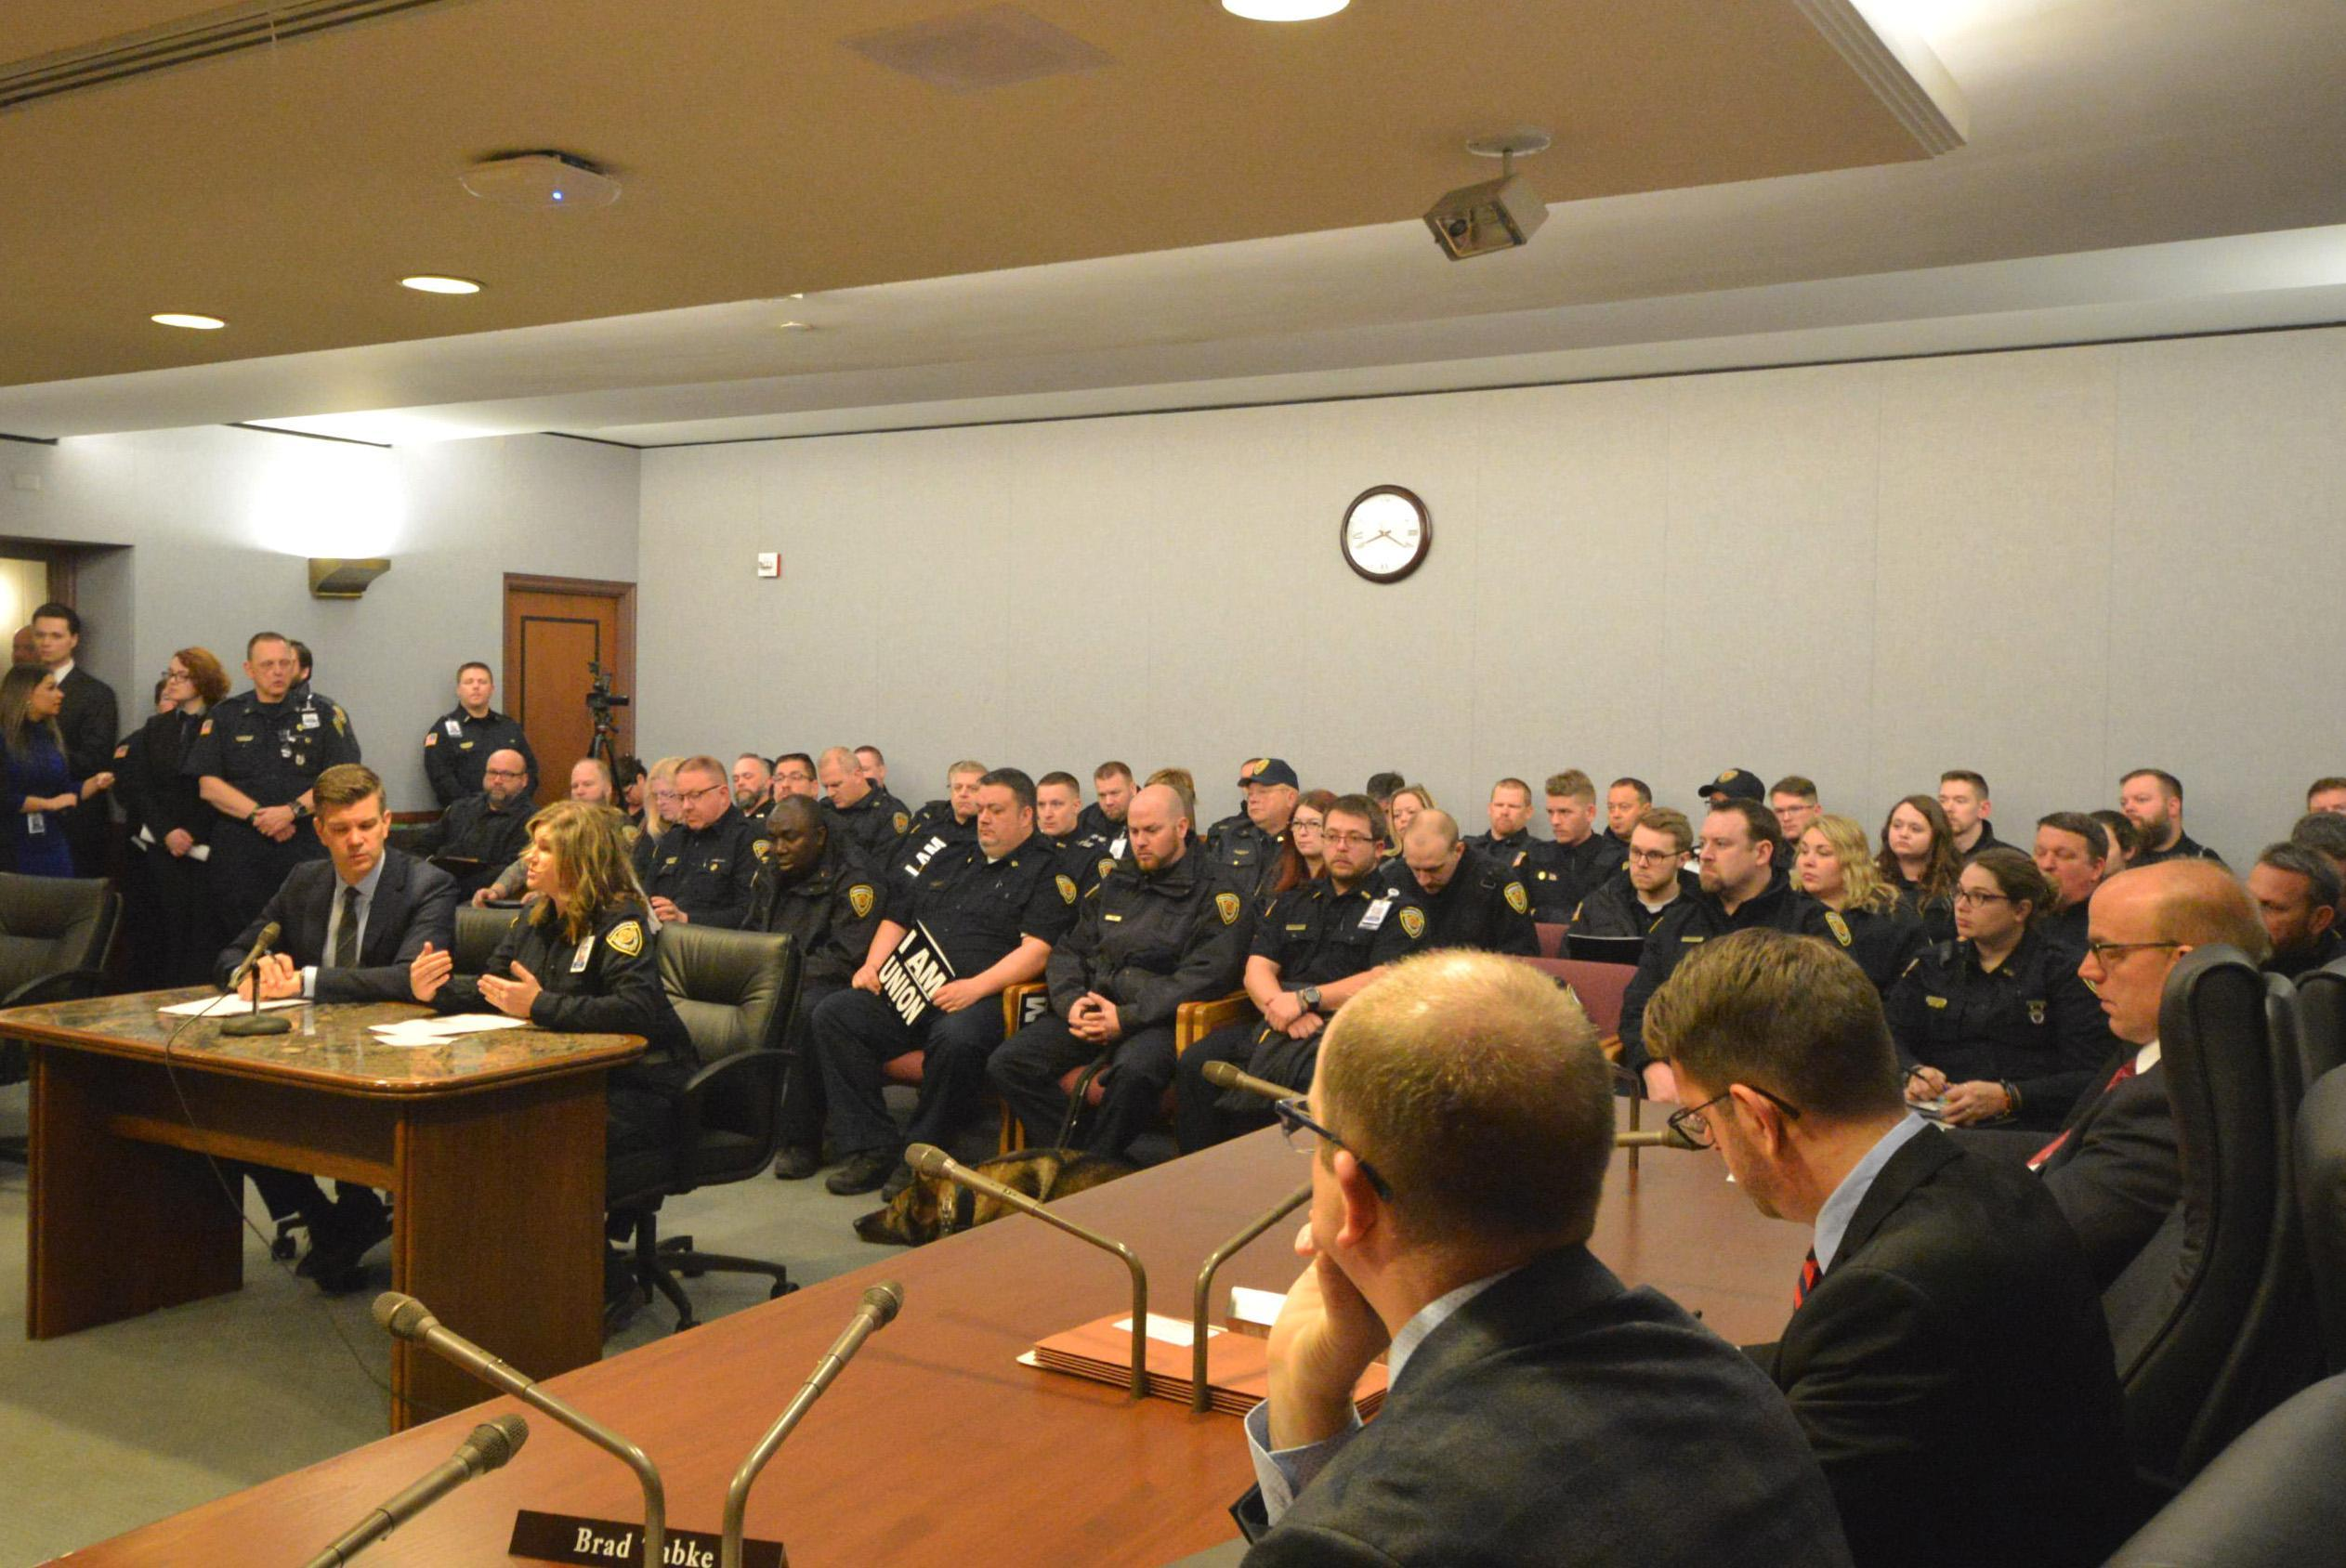 AFSCME Council 5 corrections officers and staff advocated for safe staffing, access to opioid-blocking medication, and a ban on private prisons at the Capitol.